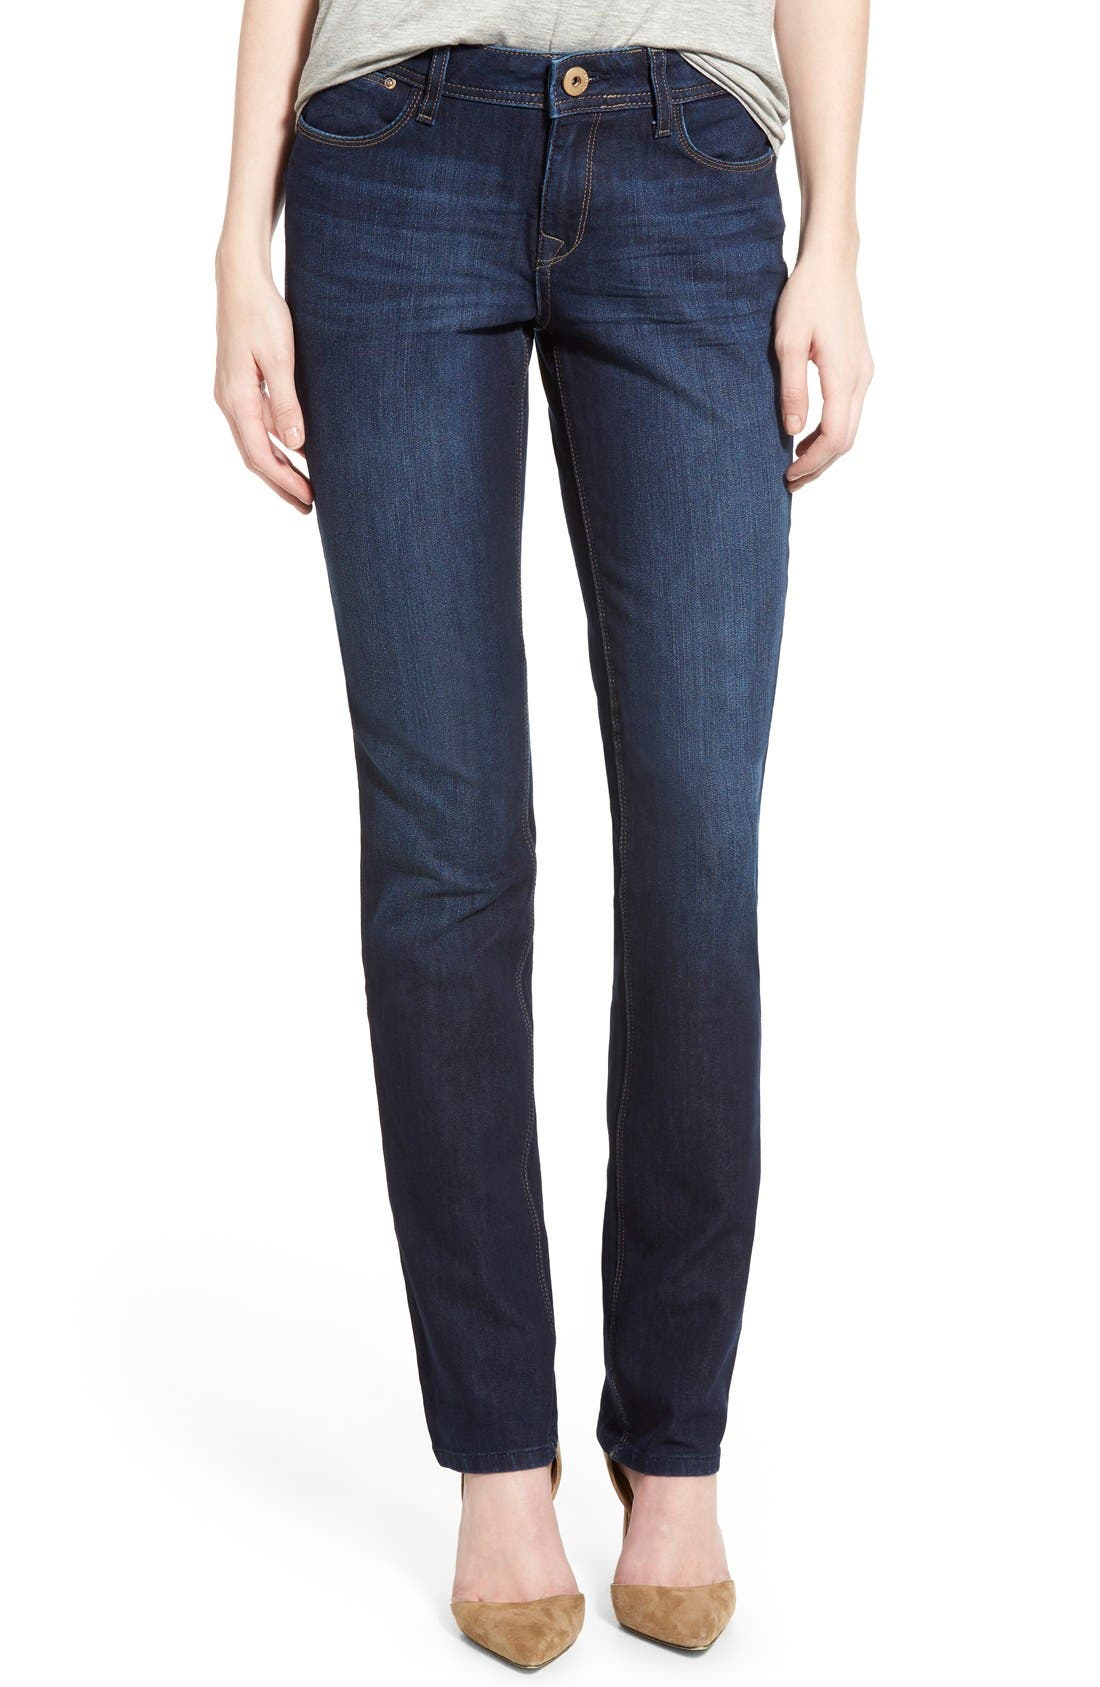 Main Image - DL1961 'Coco' Curvy Straight Jeans (Solo)